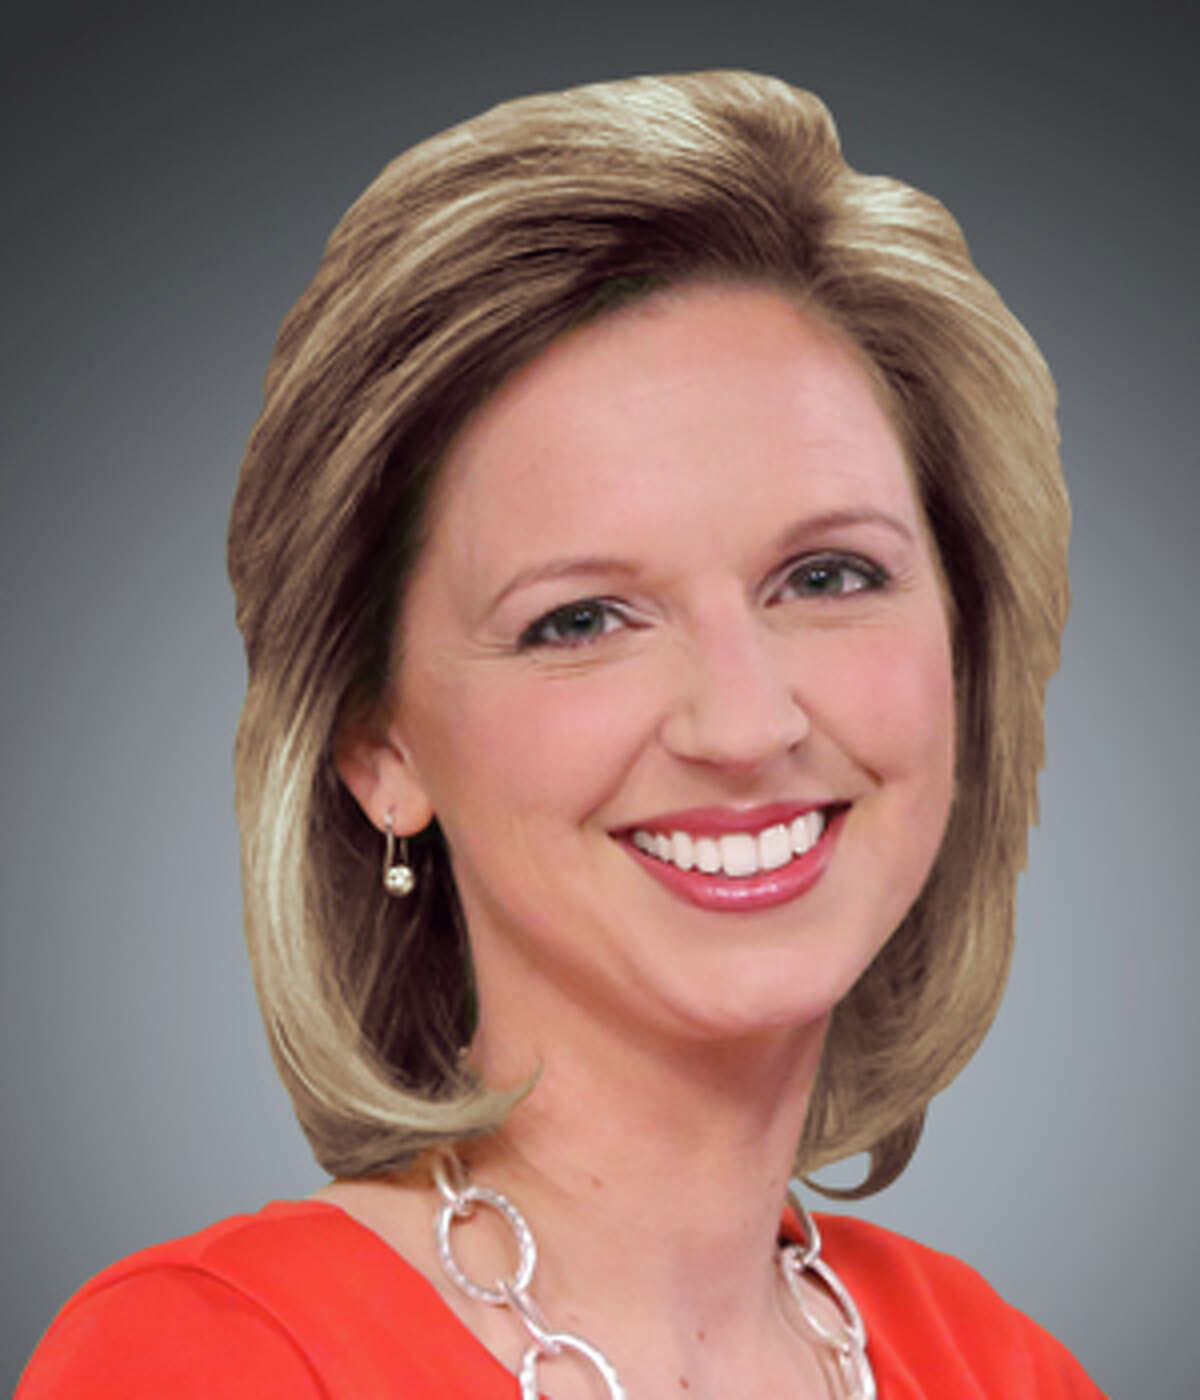 Katie Vossler, KSAT's weekend meteorologist for three years, has taken a job at the ABC affiliate in her hometown of Tyler.